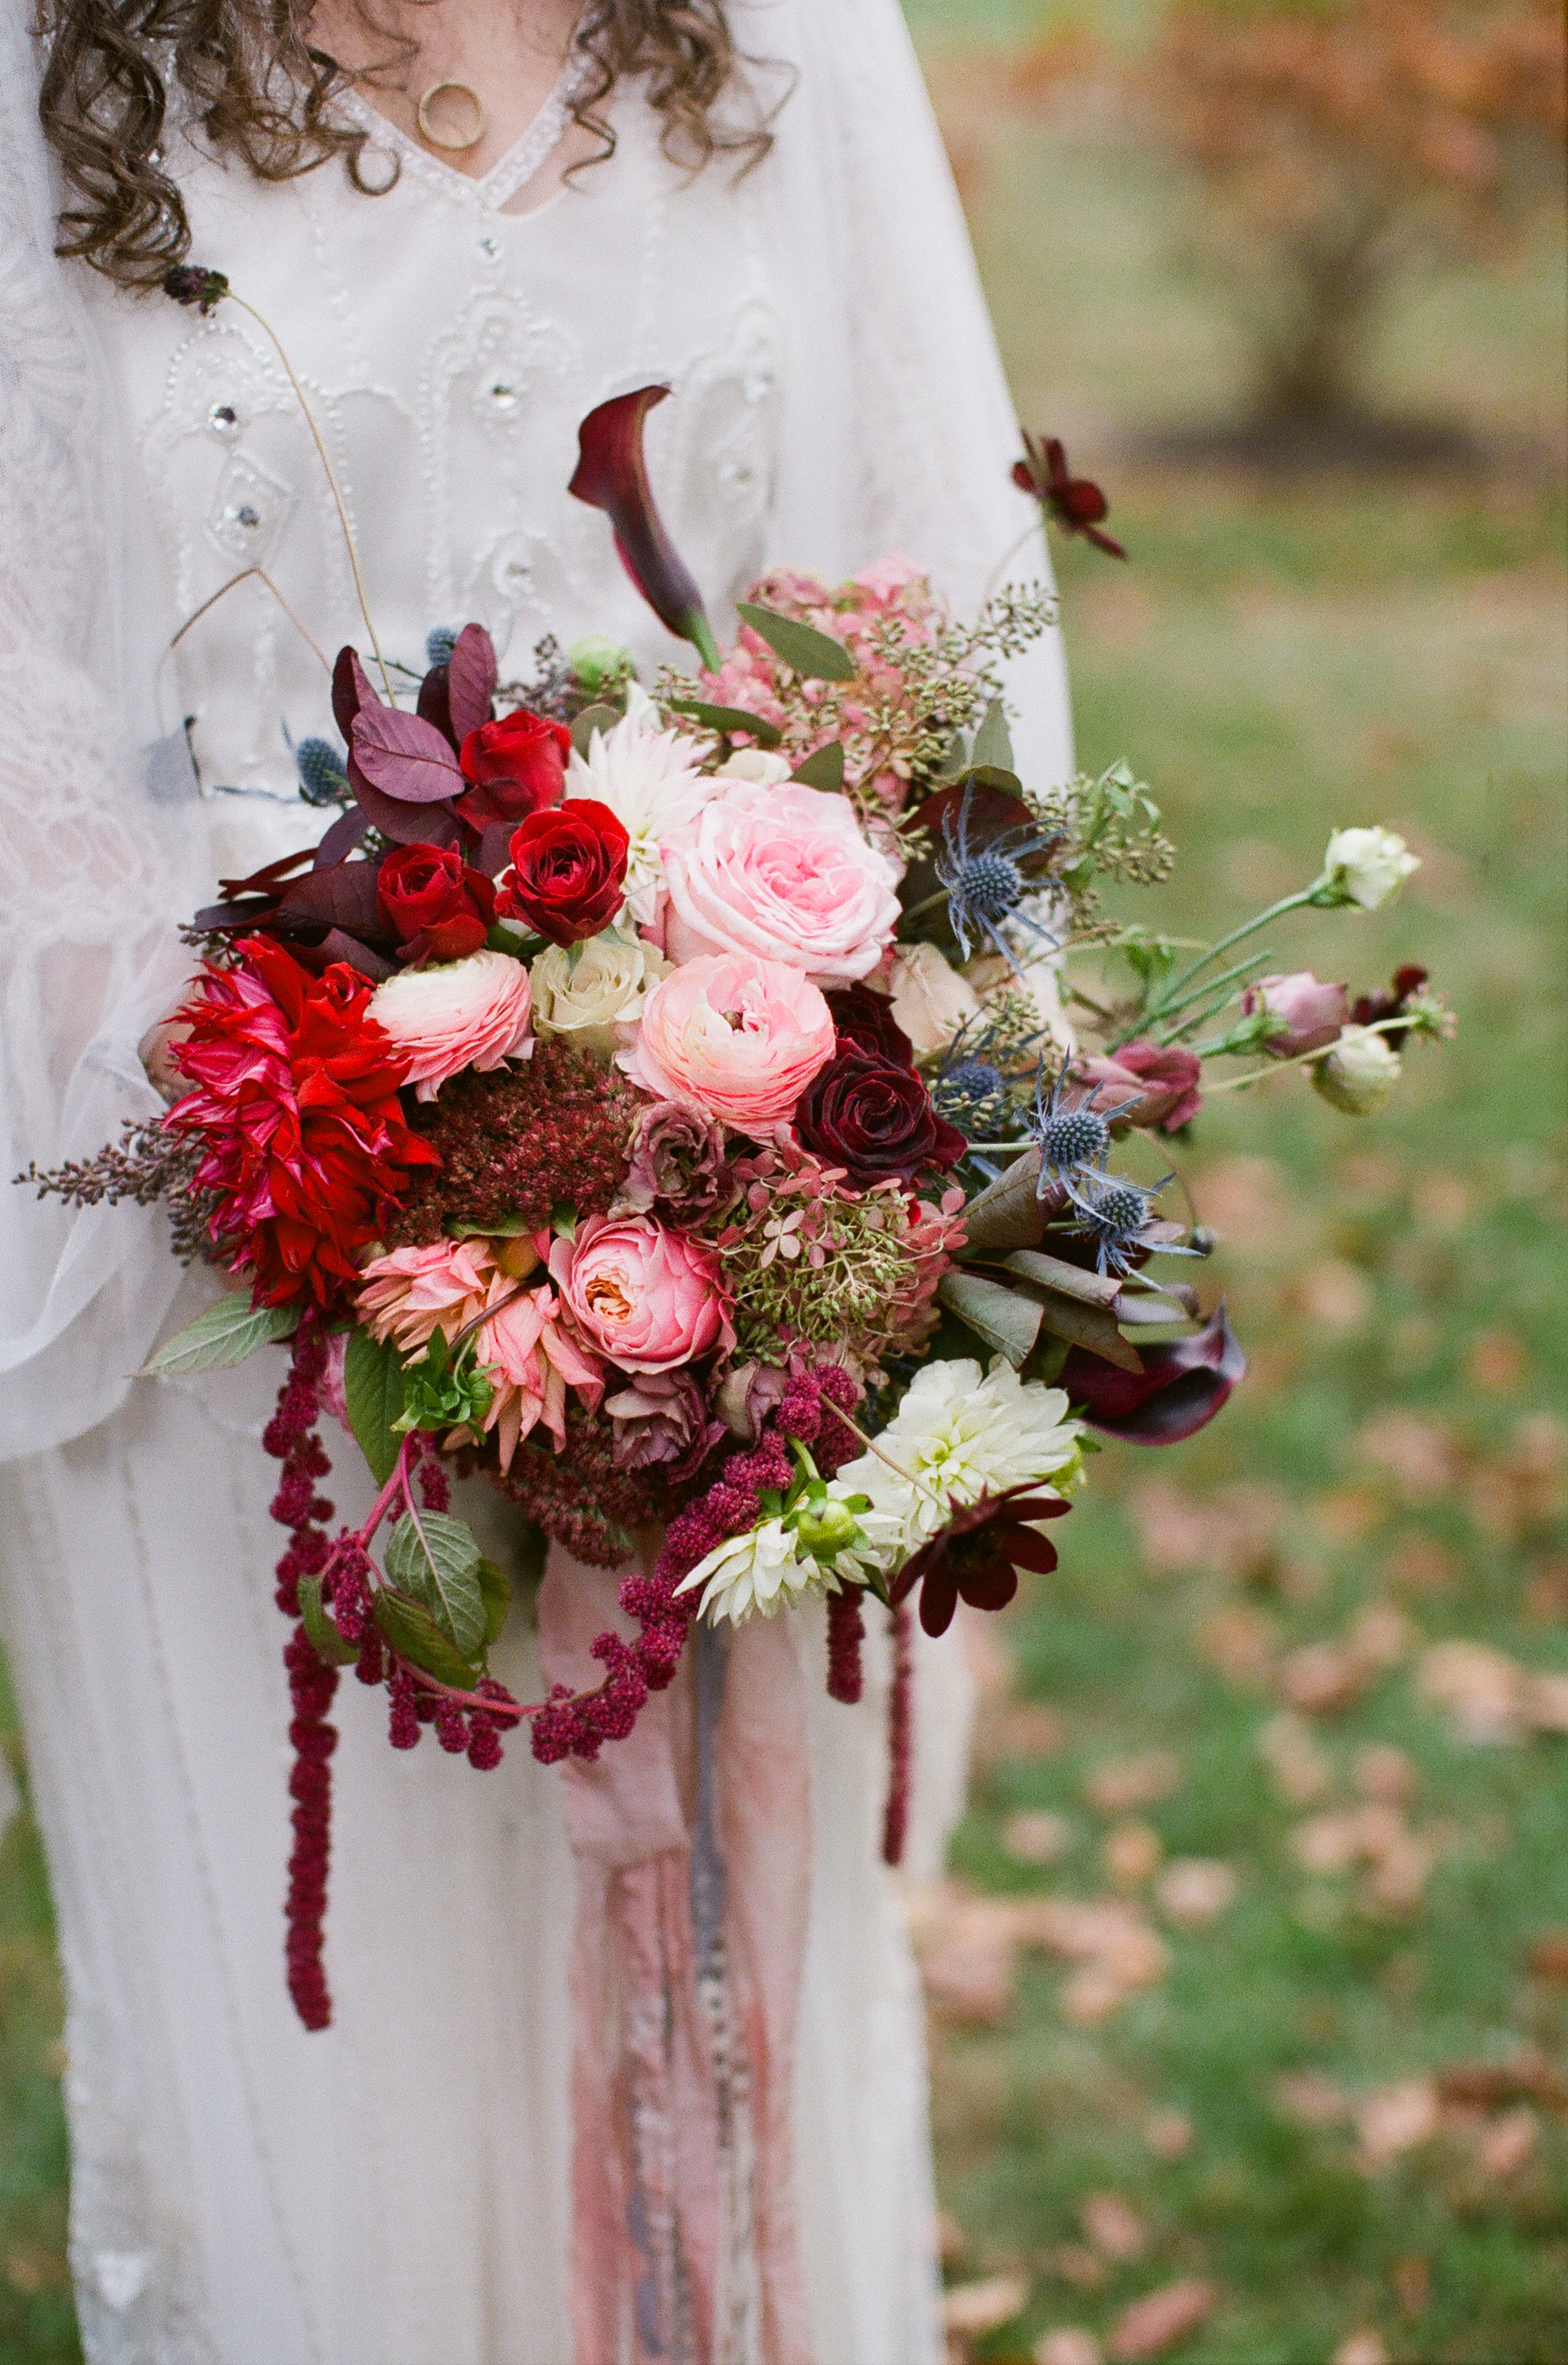 Maine Seasons Events Autumn Wedding by Meredith Perdue 6.jpg